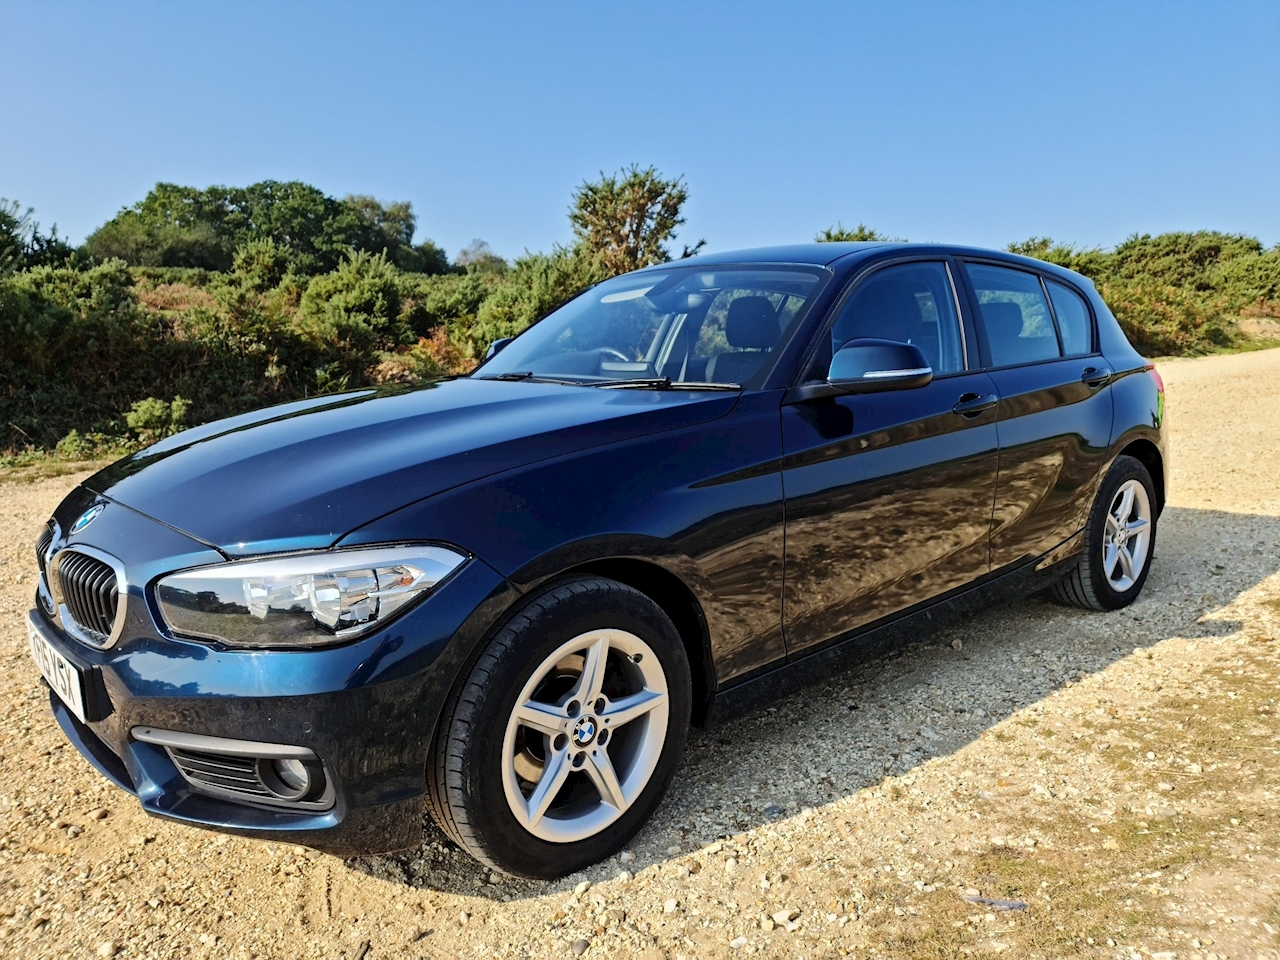 BMW 1 Series 118D Se Hatchback 2.0 Automatic Diesel